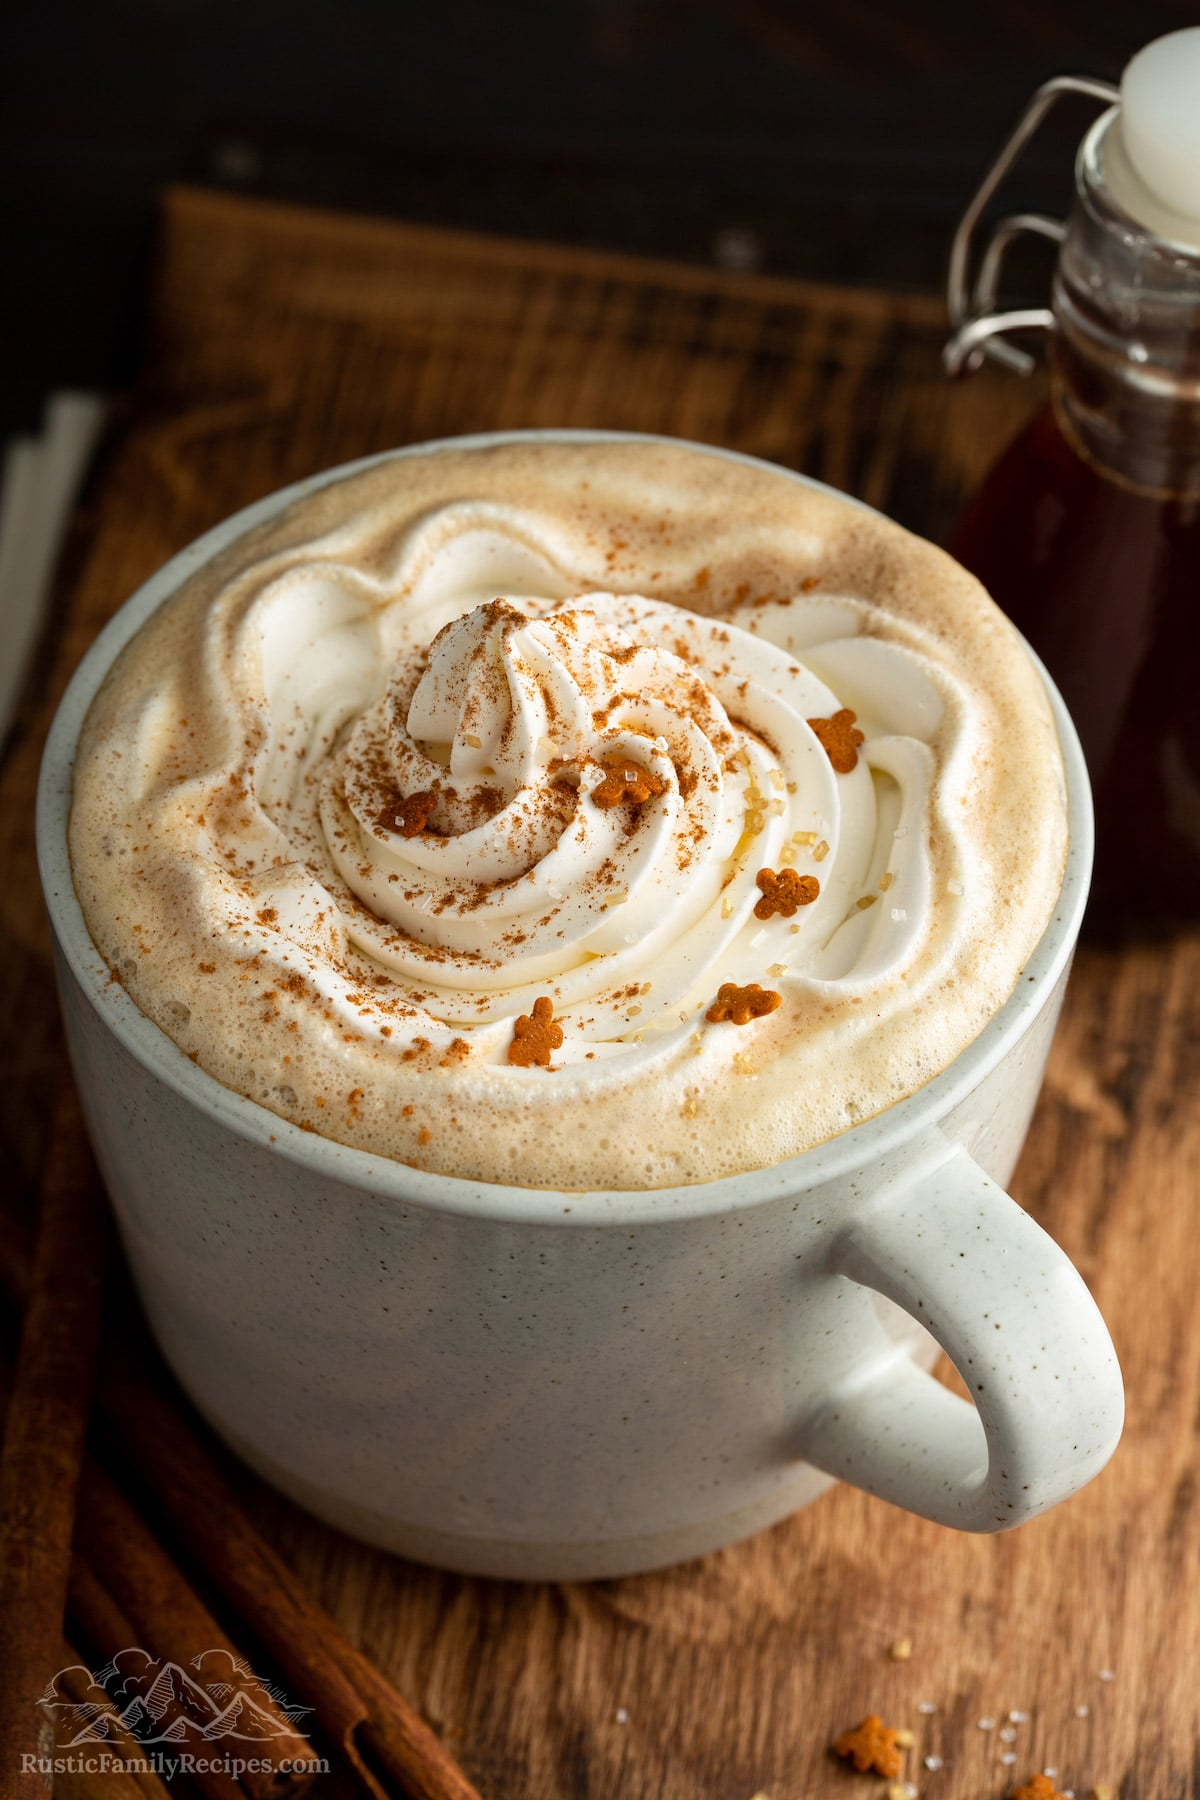 Coffee in a mug tipped with whipped cream and gingerbread sprinkles.